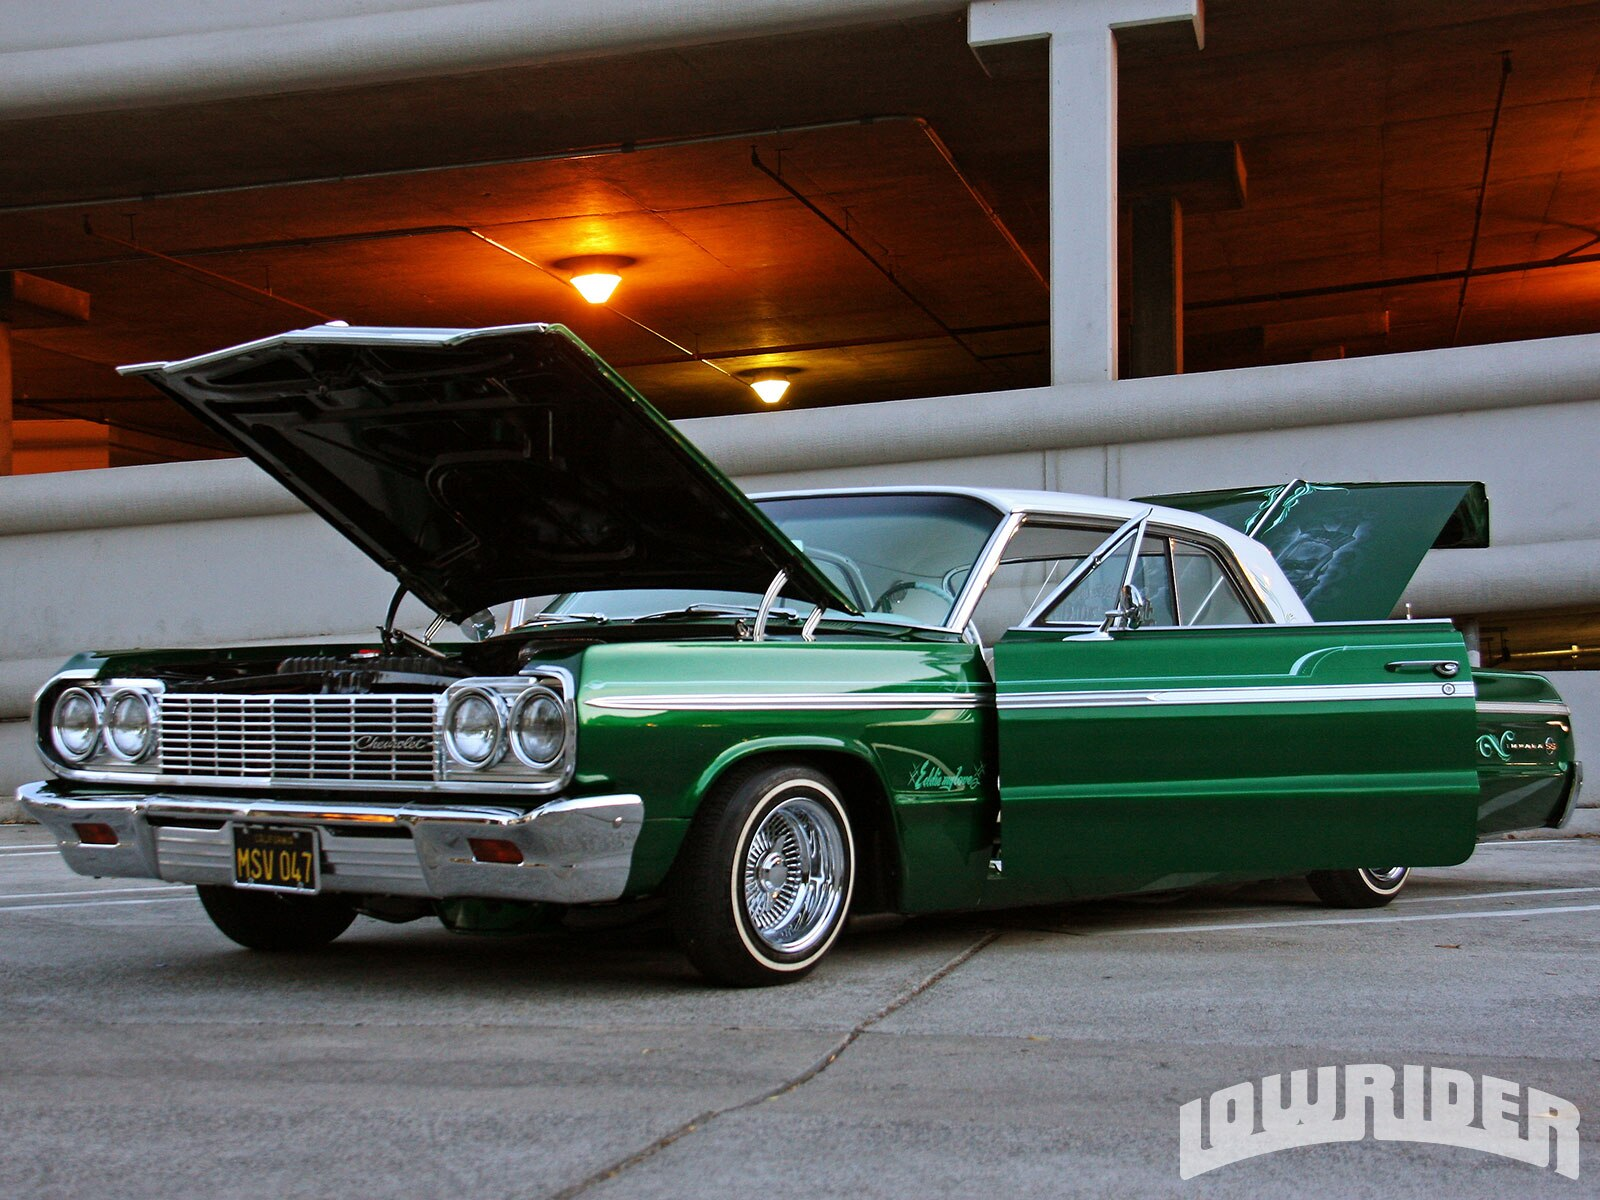 Lowrider Car Hd Wallpaper 1964 Chevrolet Impala Lowrider Magazine